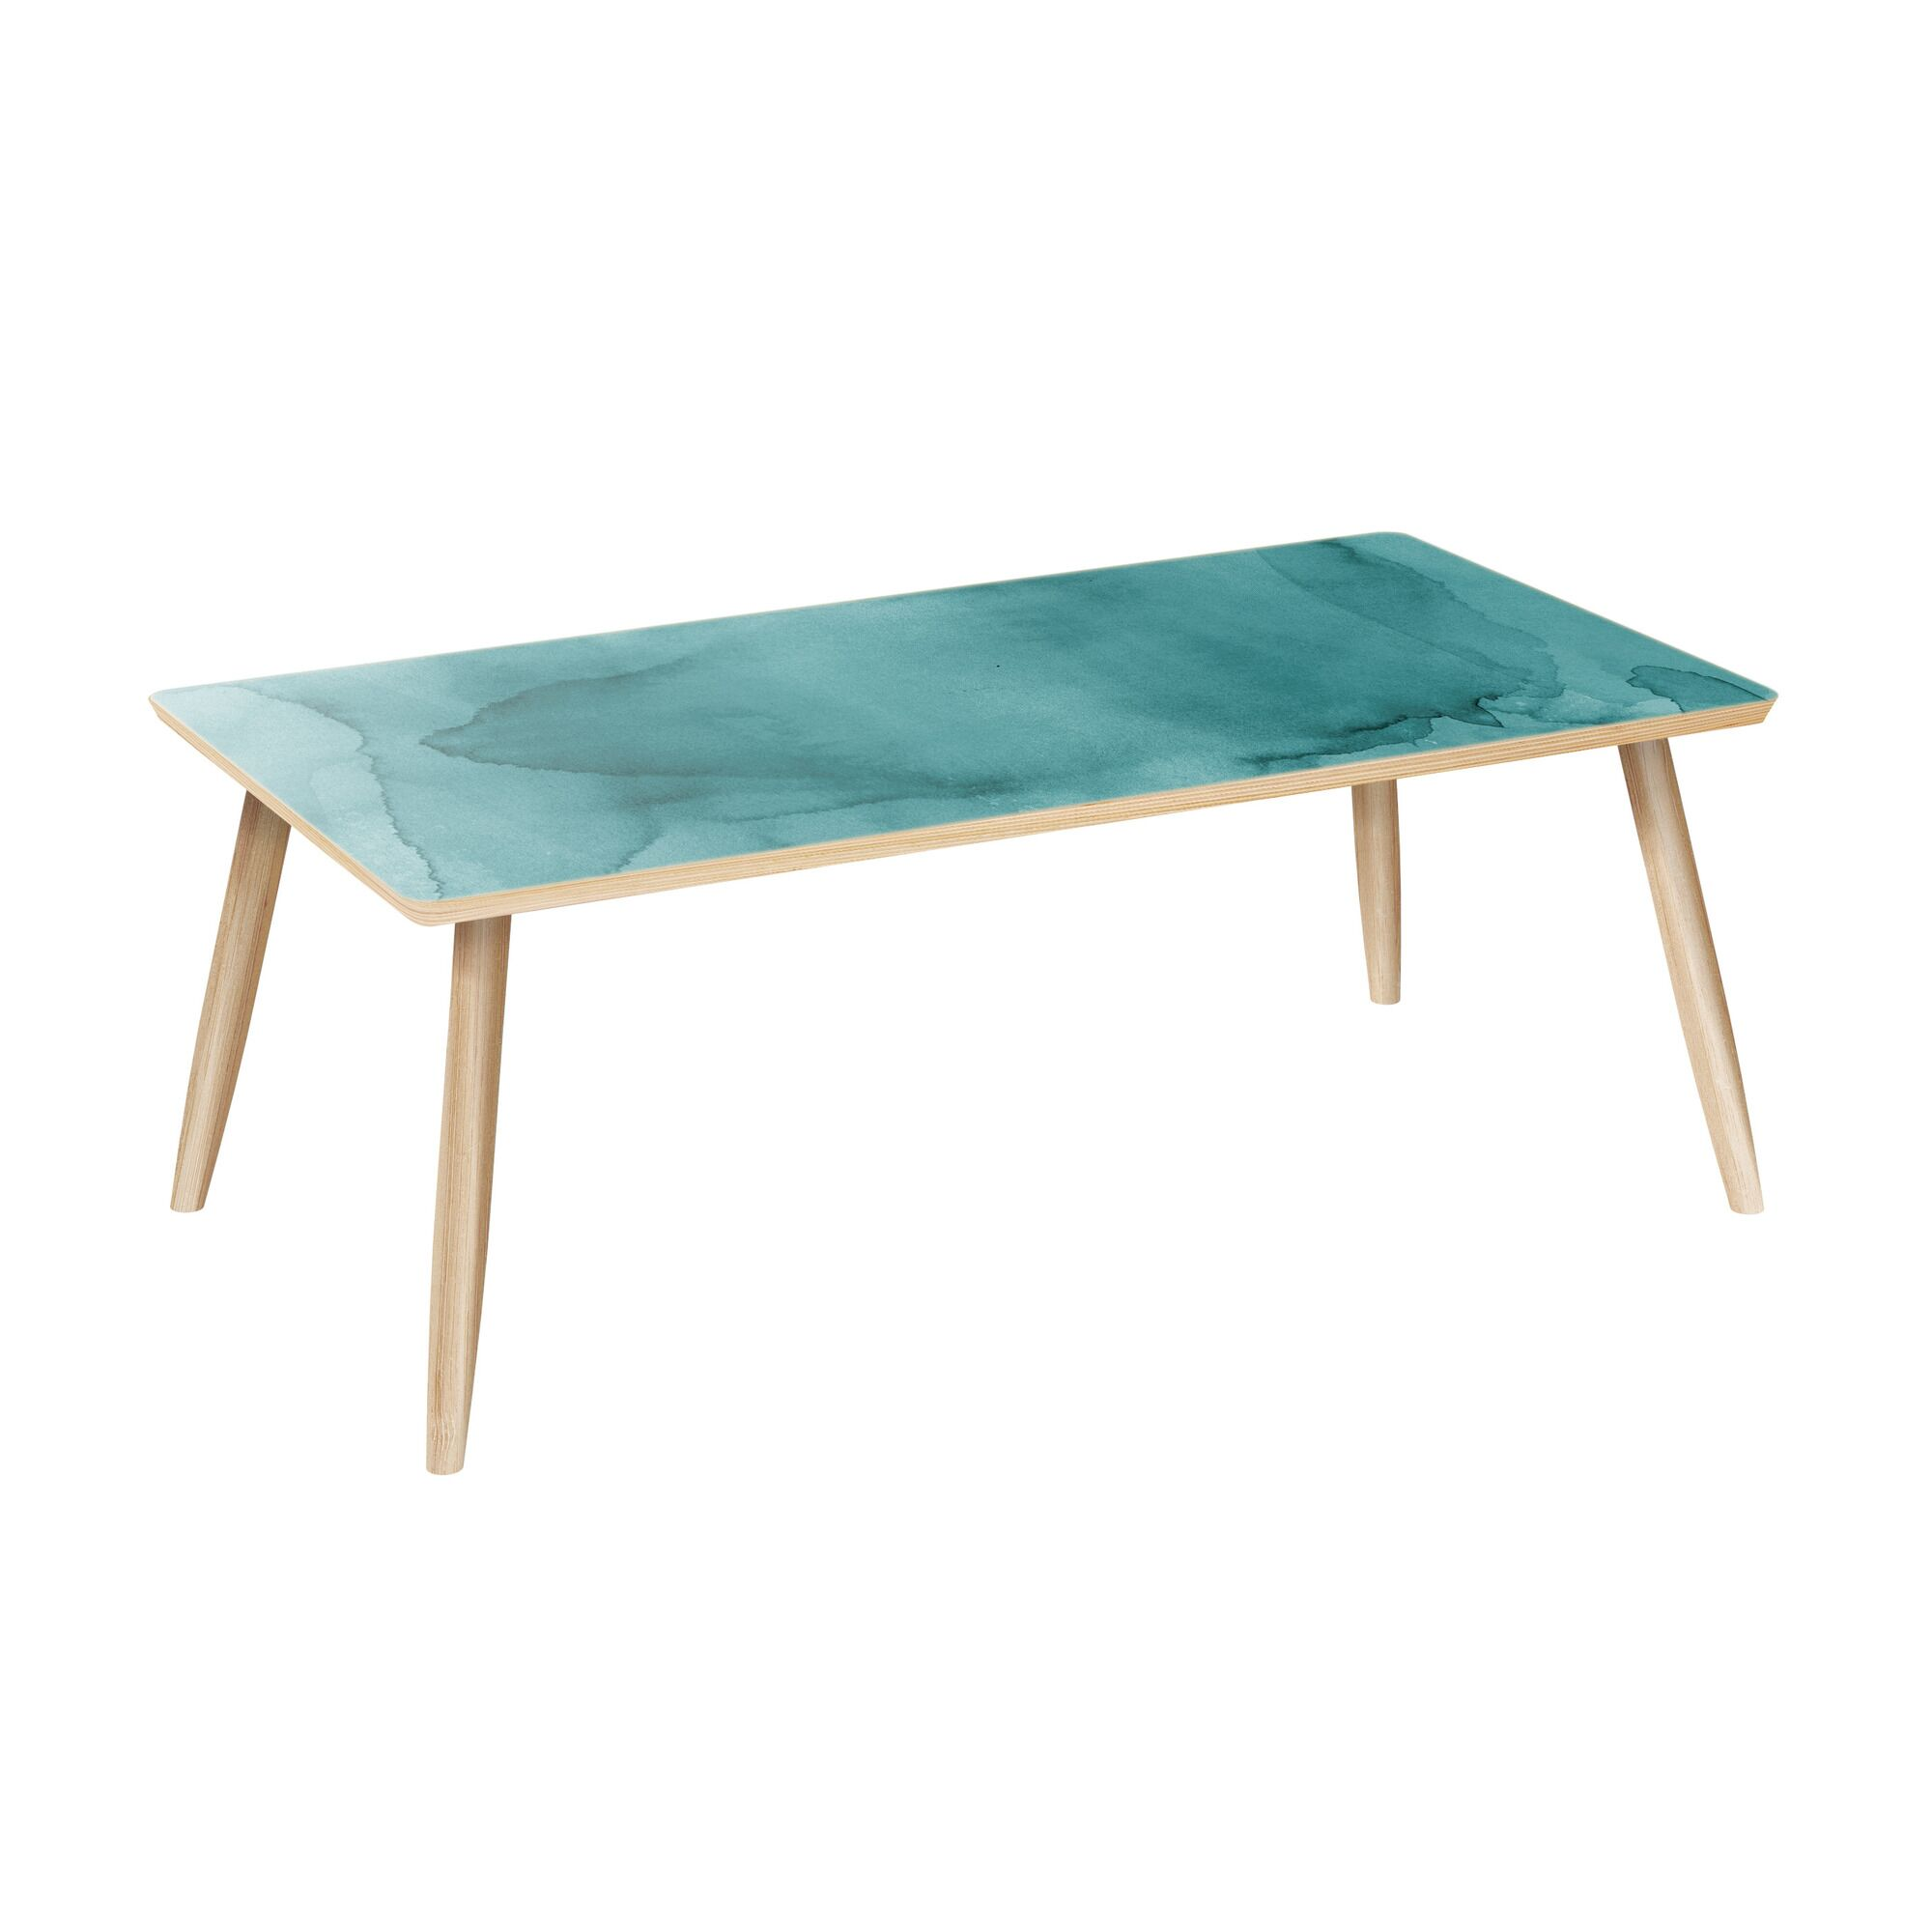 Loiret Coffee Table Table Base Color: Natural, Table Top Color: Turquoise